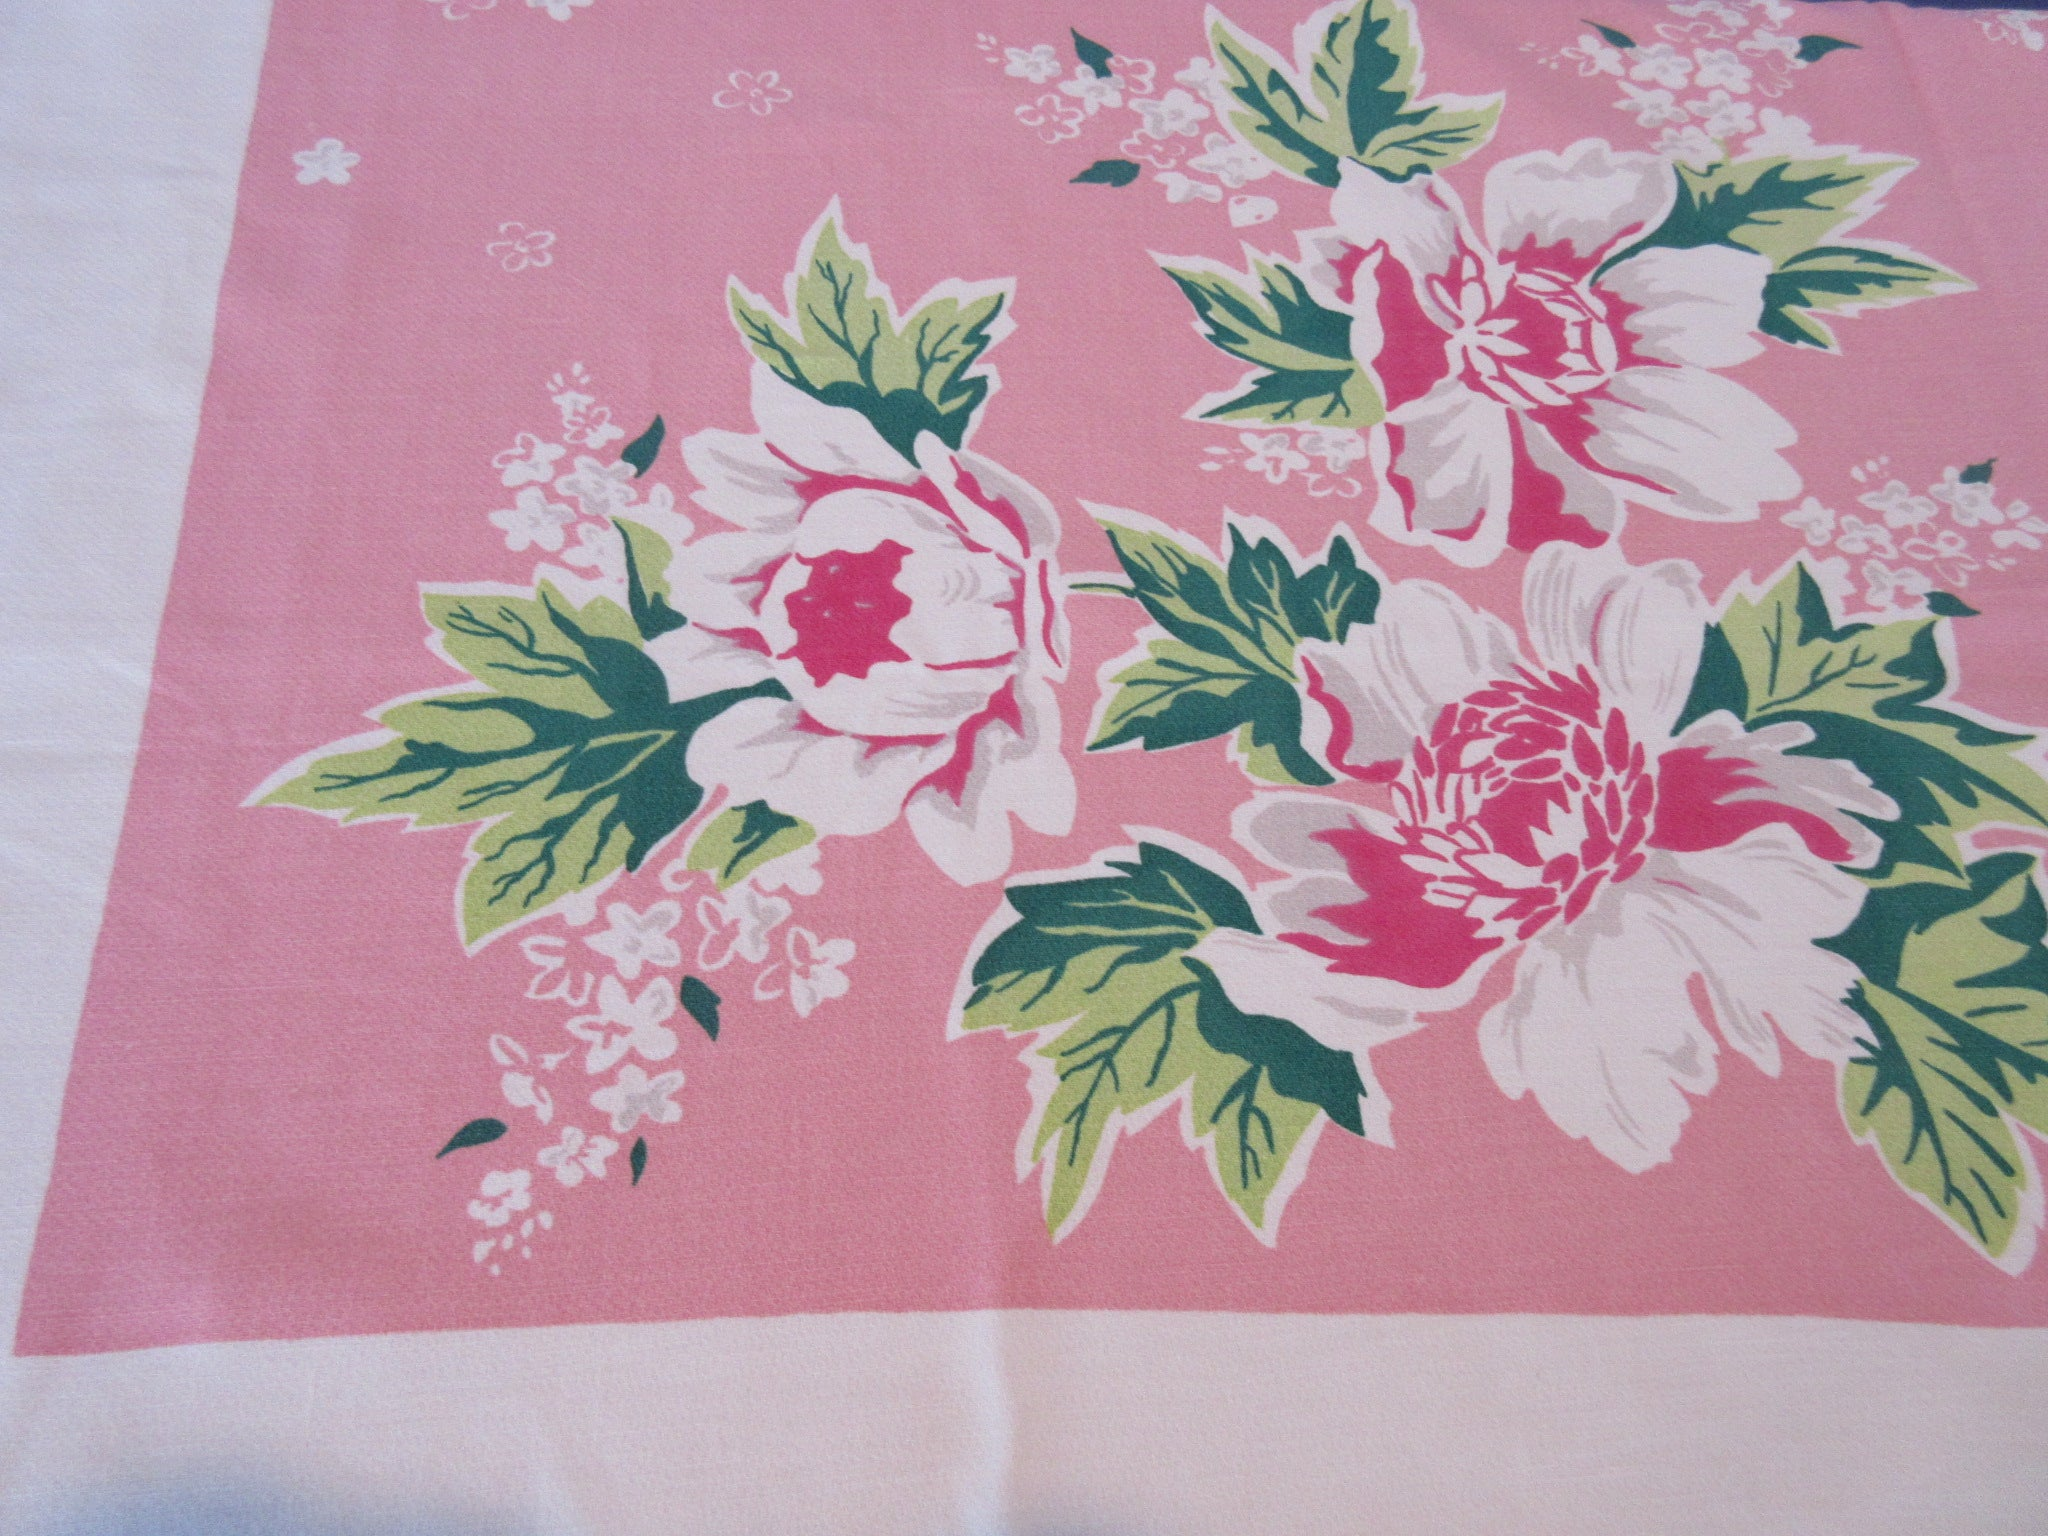 Sweet Peonies on Pink Simtex Floral Vintage Printed Tablecloth (54 X 48)